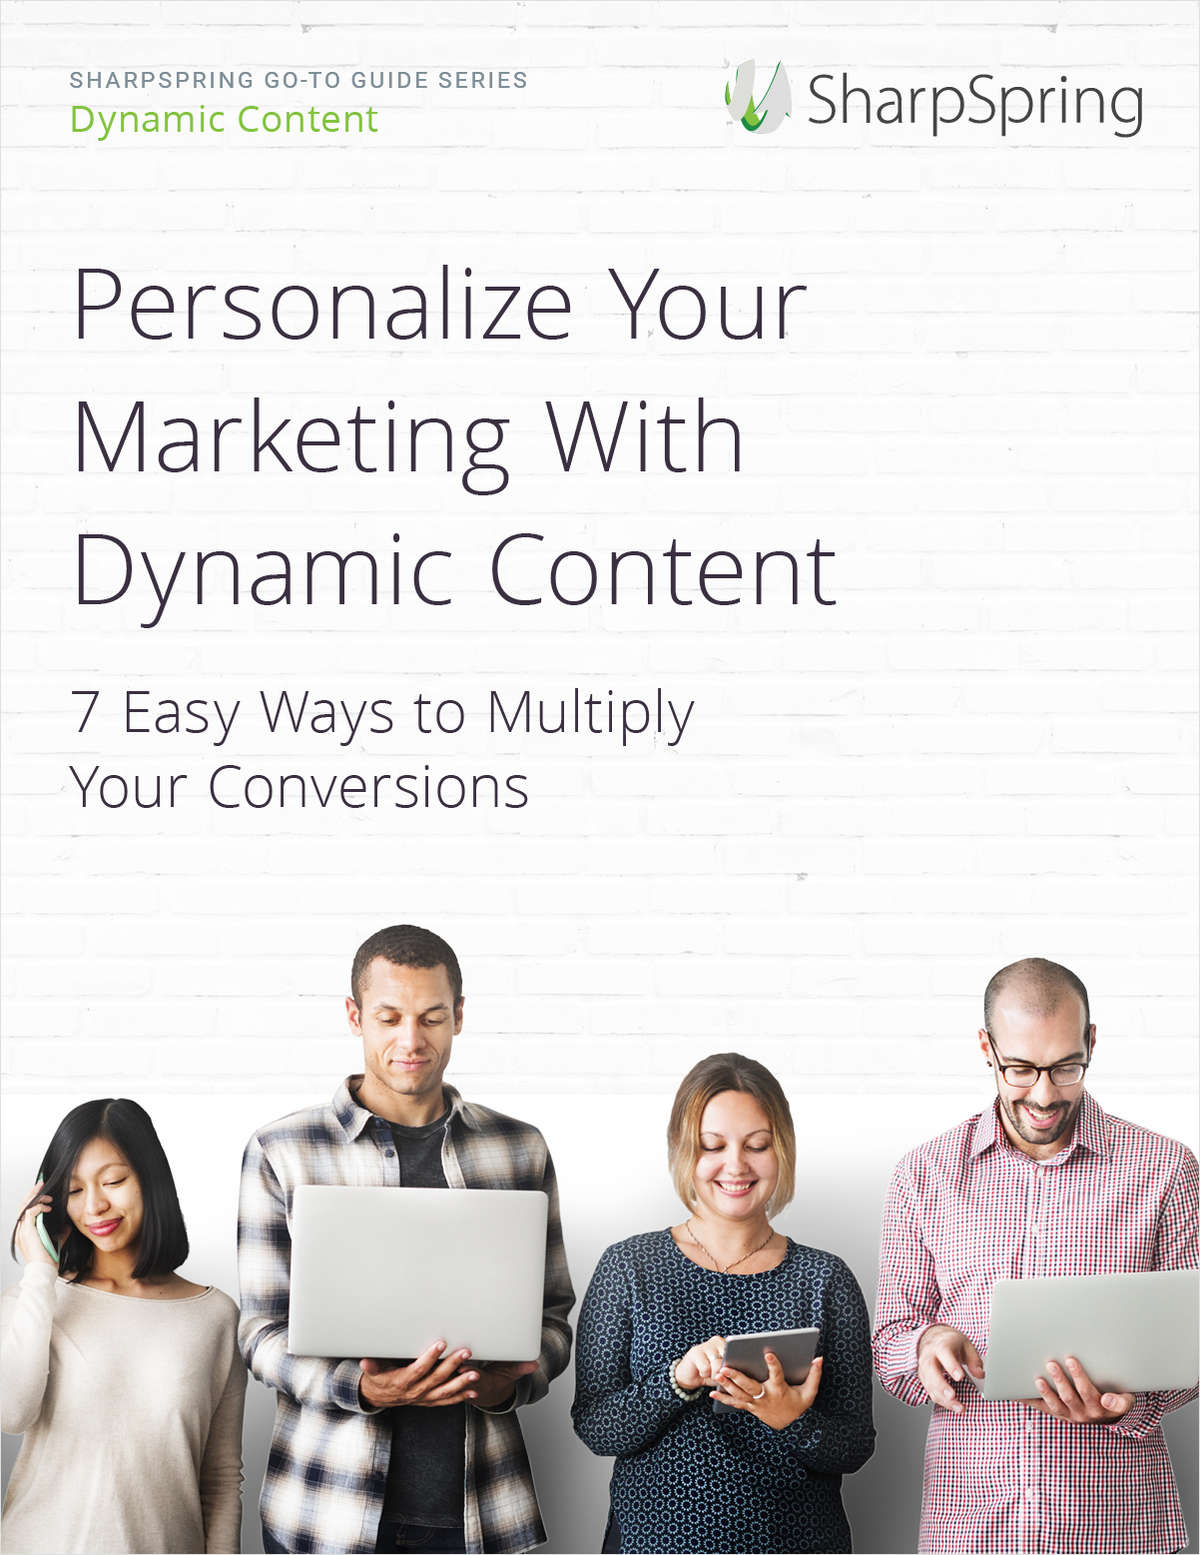 How to Multiply Conversions With Dynamic Content